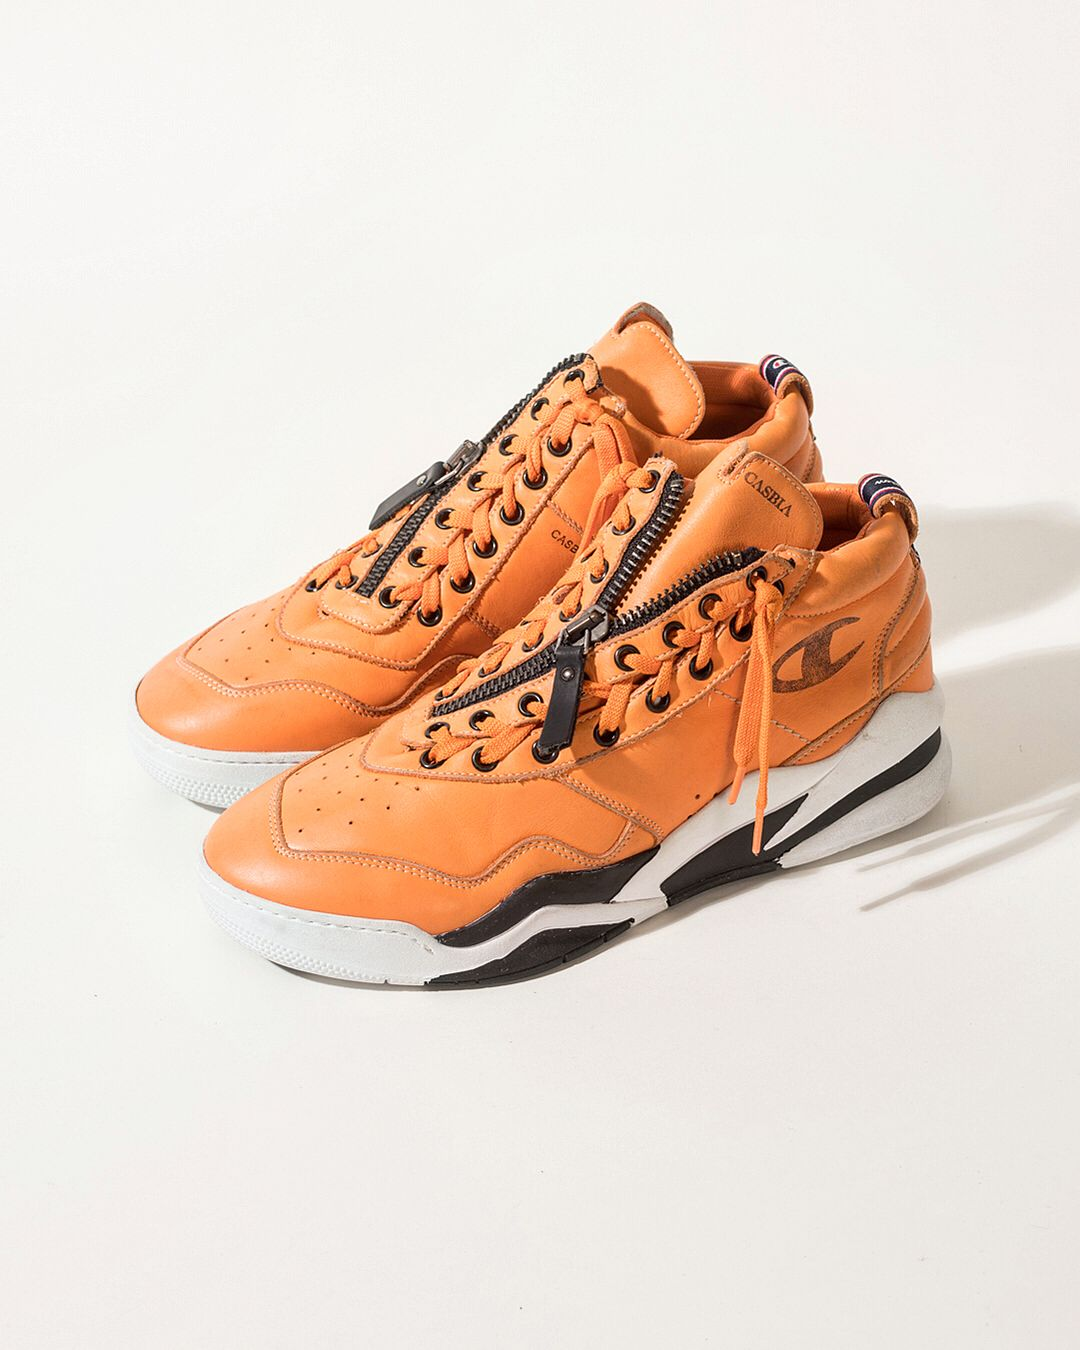 6ba77ebbe0a SS18 FIRST DROP   9 new shoes available online at casbia.com    . AWOL  Atlanta   Safety Orange   Stone washed calf   Casbia x Champion